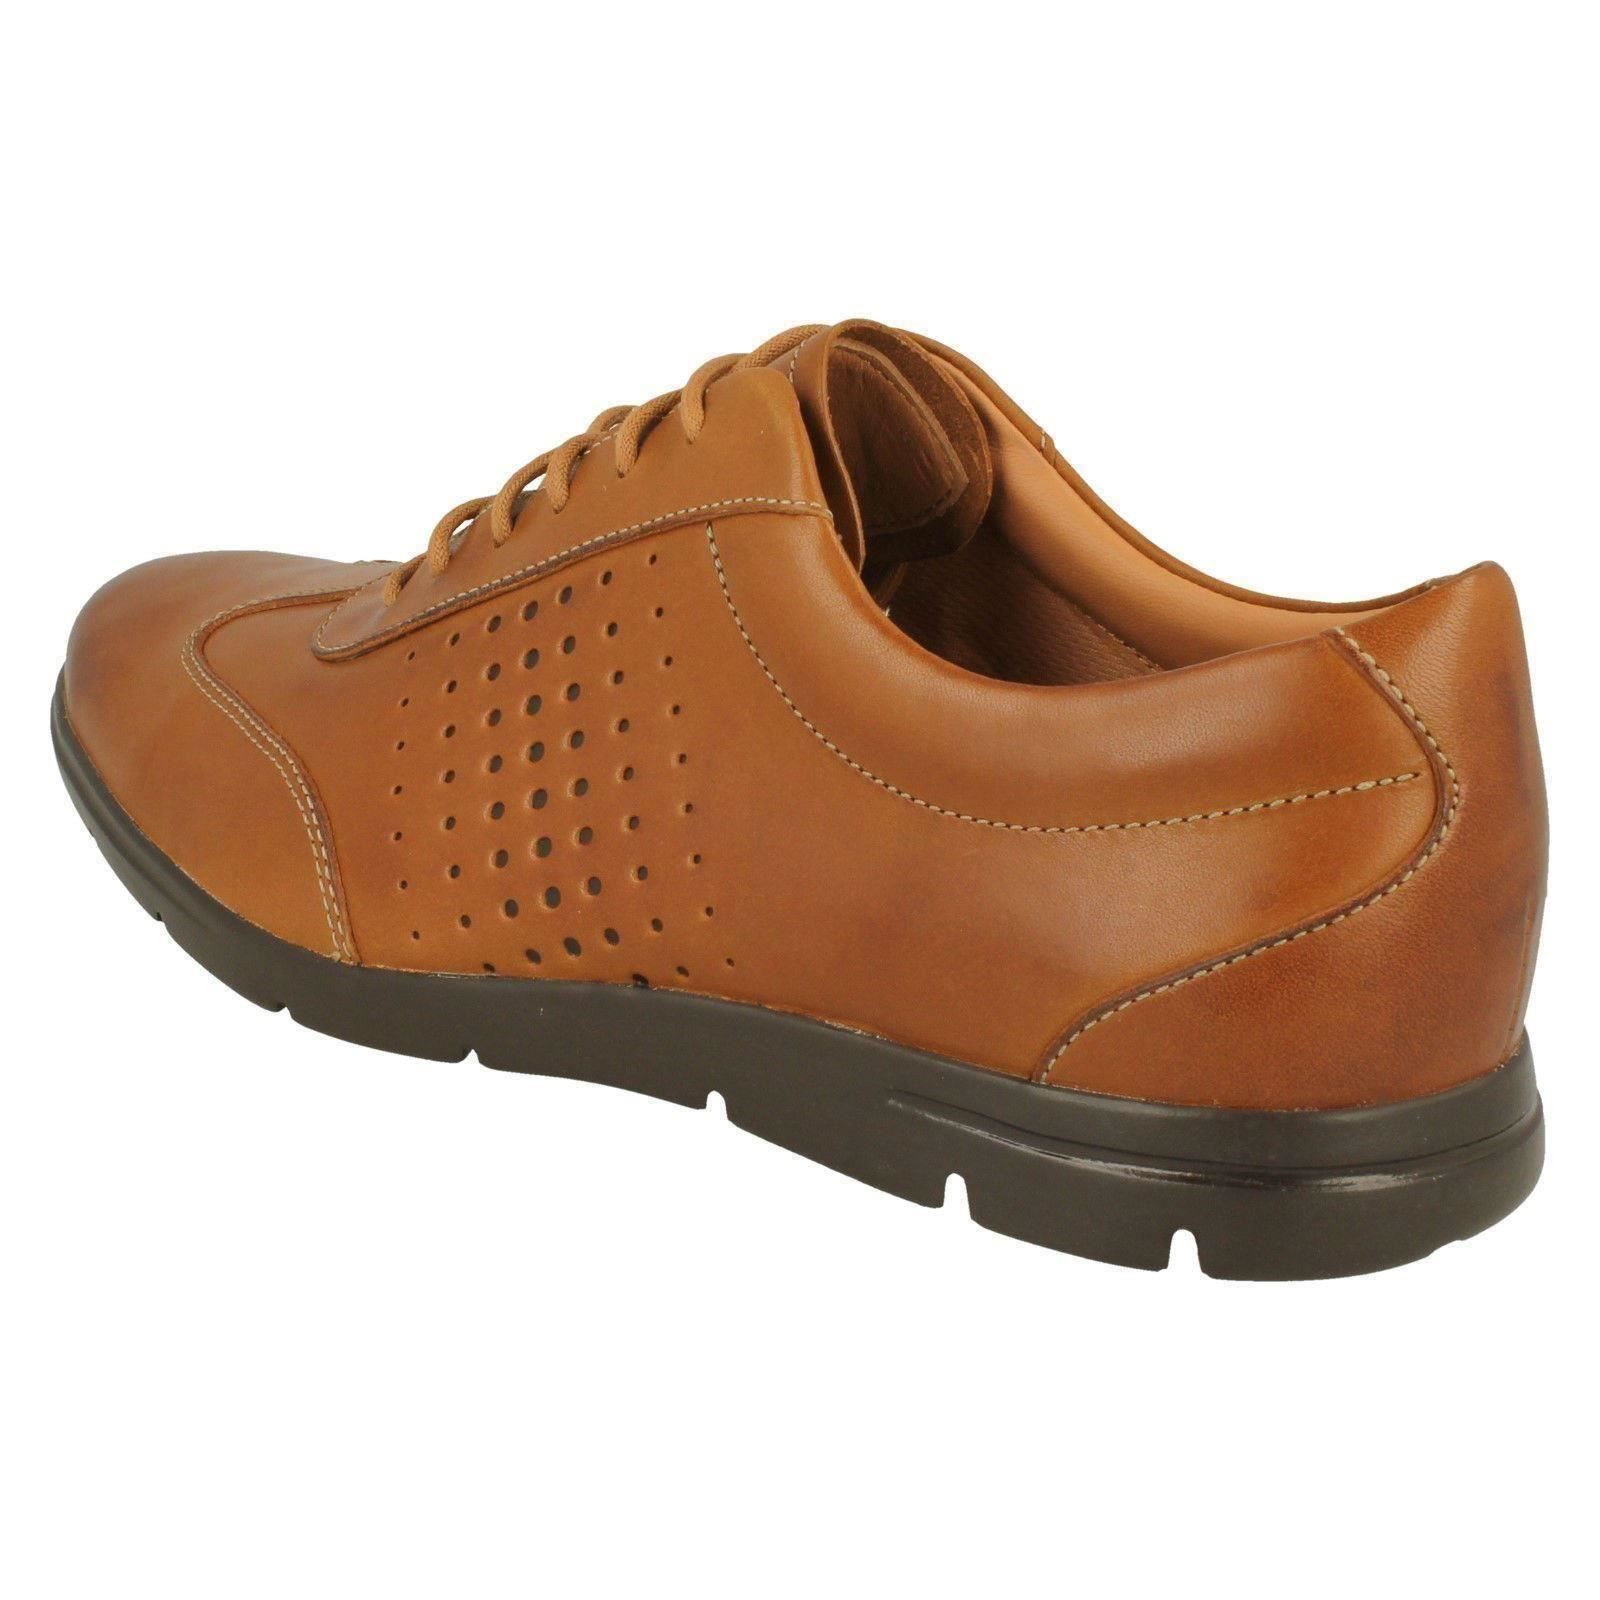 Mens Clarks Casual Lace Up Shoe Vennor Vibe